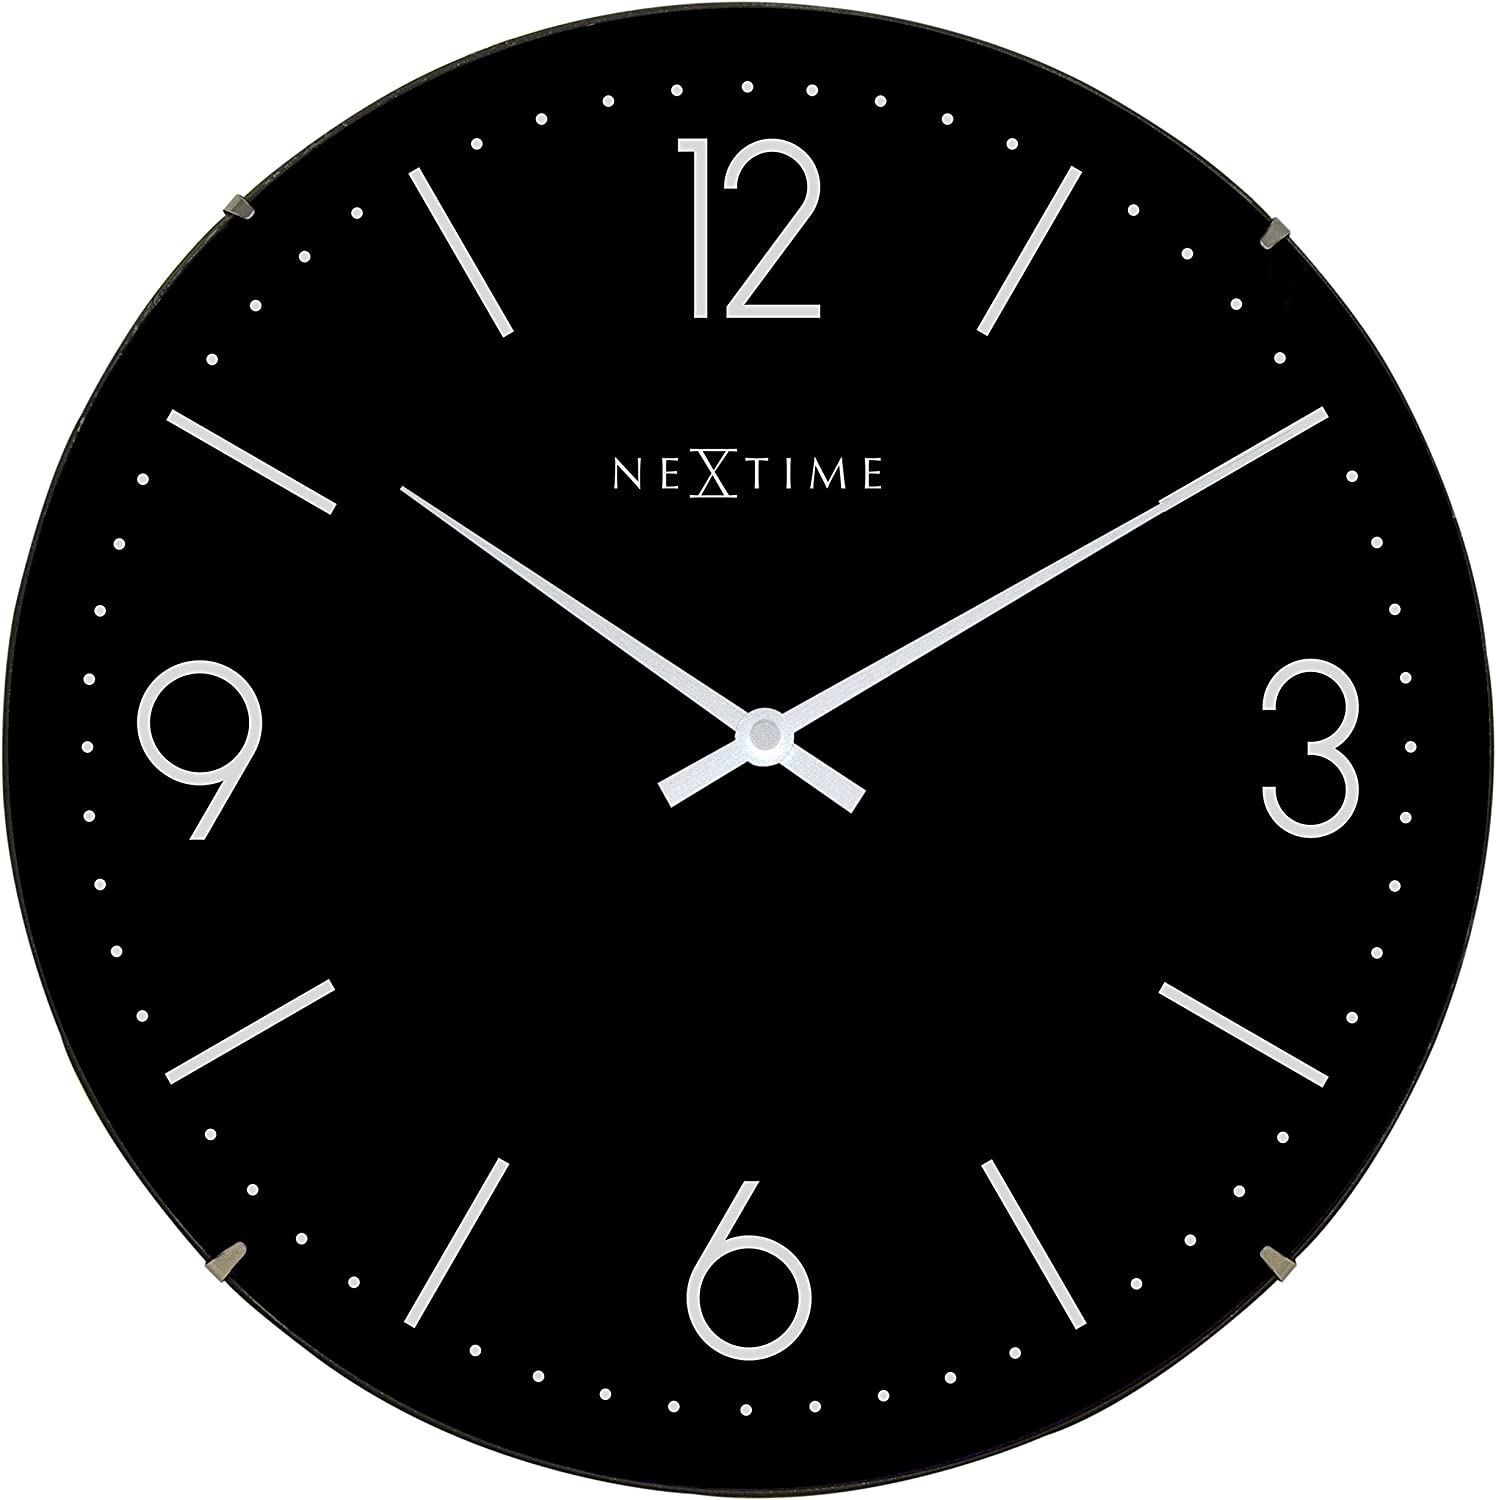 3 available option of ONE of 3 wall clocks quartz movement REDUCED to £35